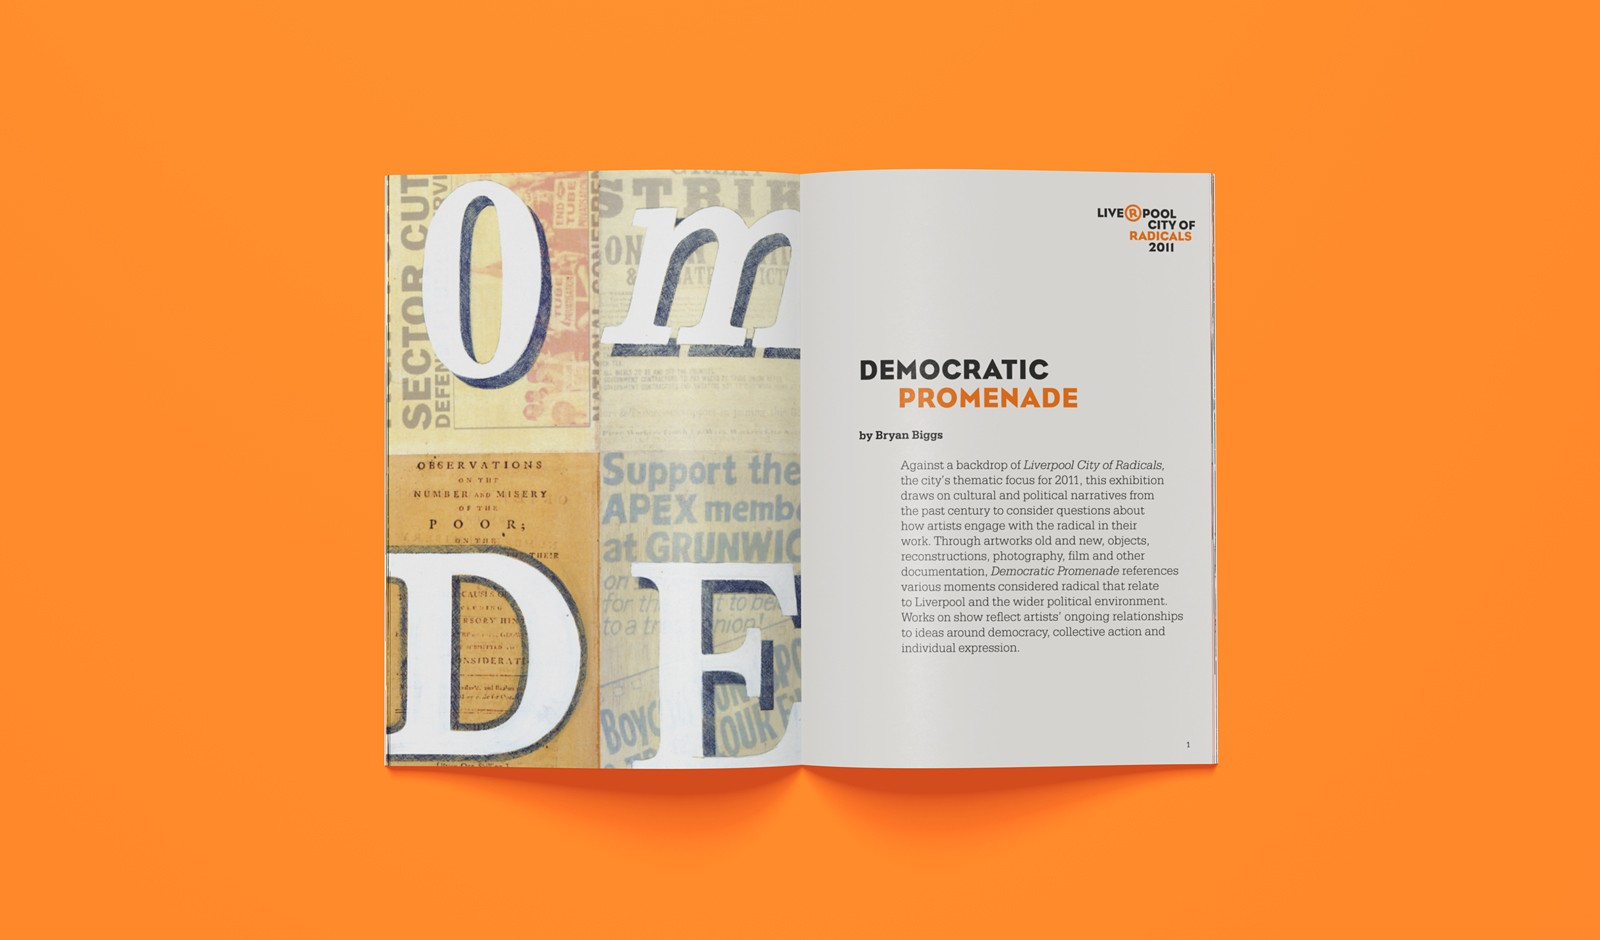 Exhibition guide: Democratic Promenade